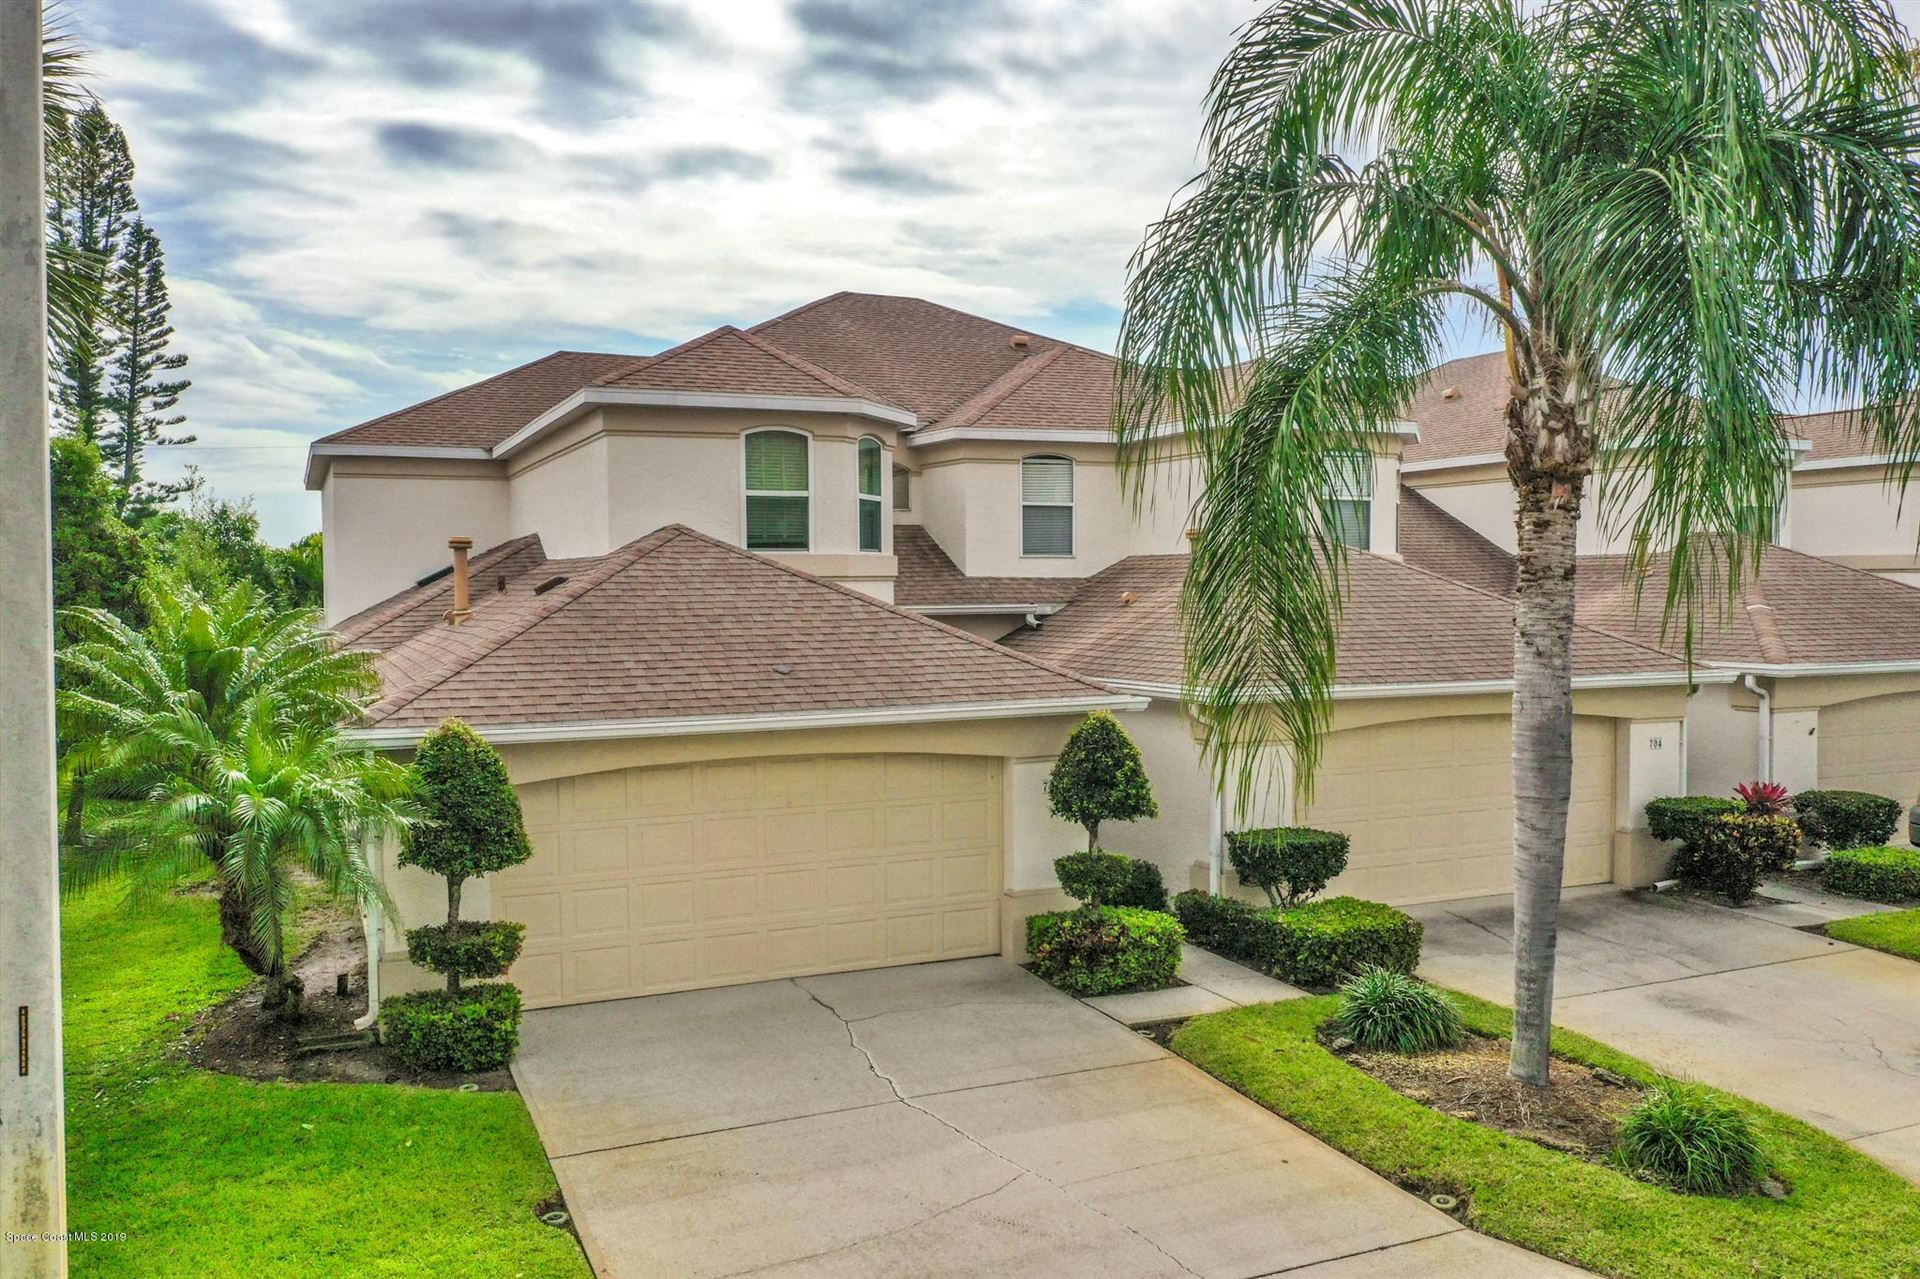 702 Mar Brisa Court #702, Satellite Beach, FL 32937 - #: 900091